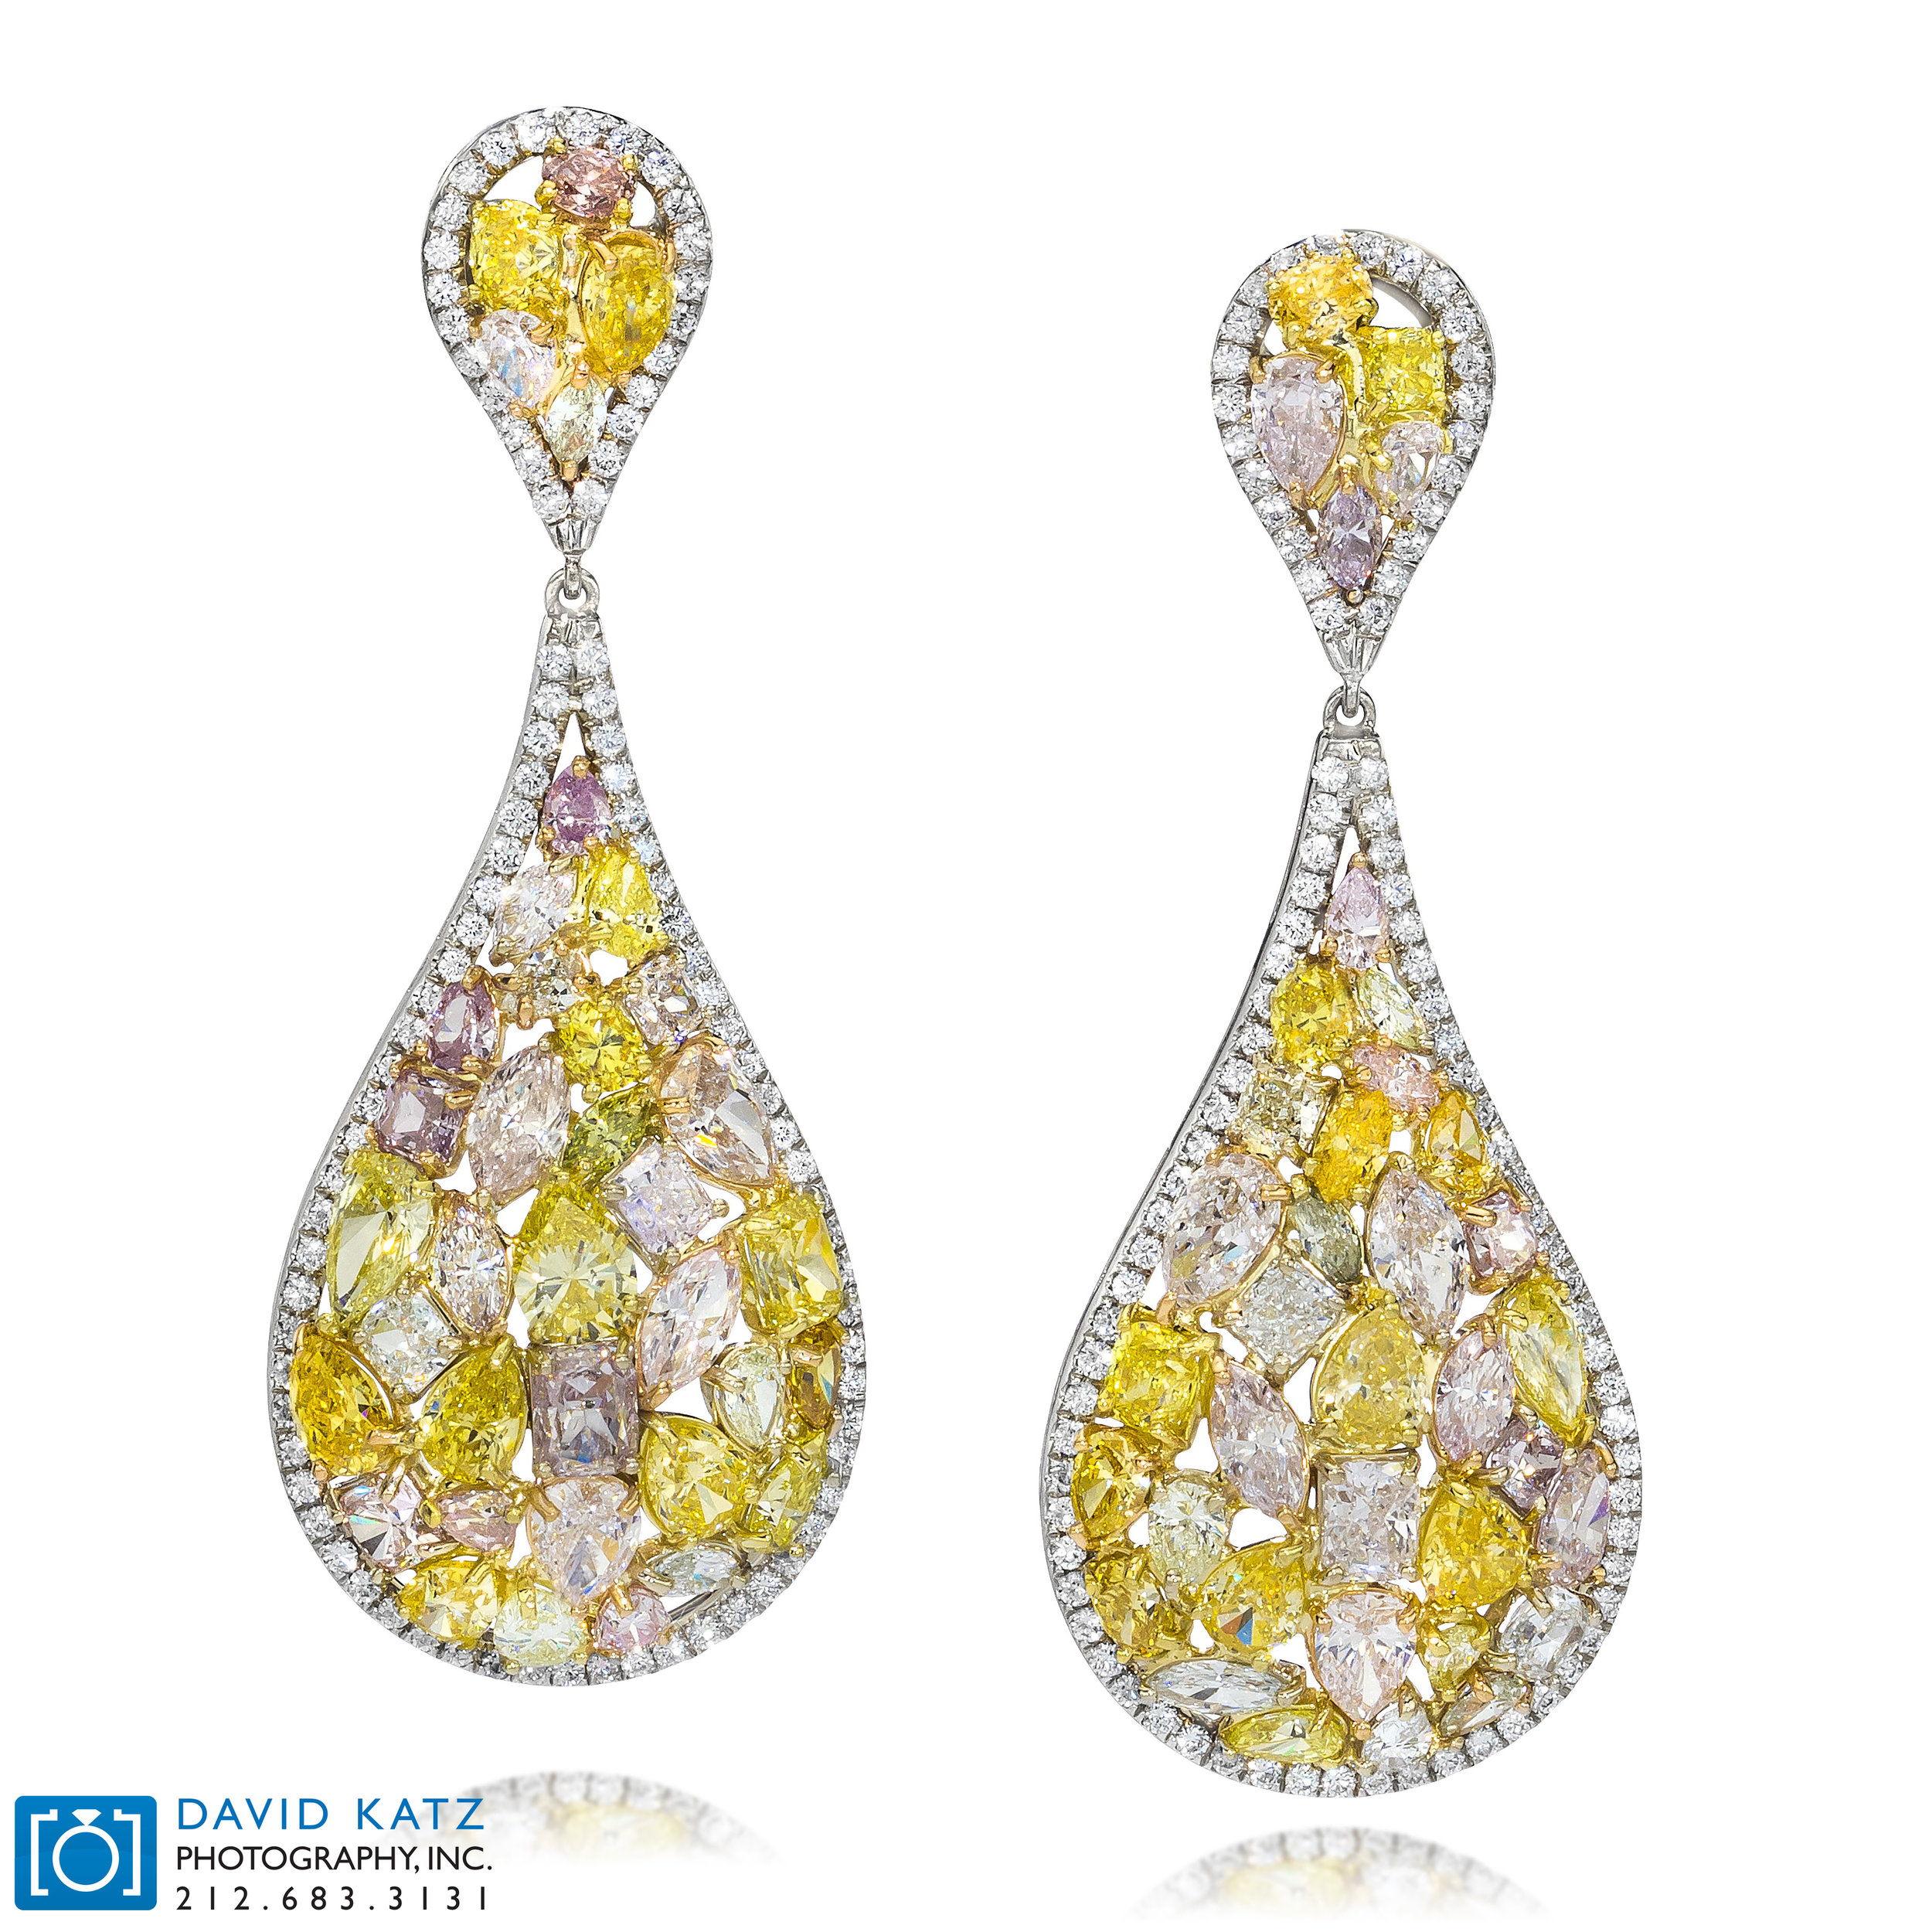 Mixed Cut Colored Diamond Earrings_NEWLOGO.jpg